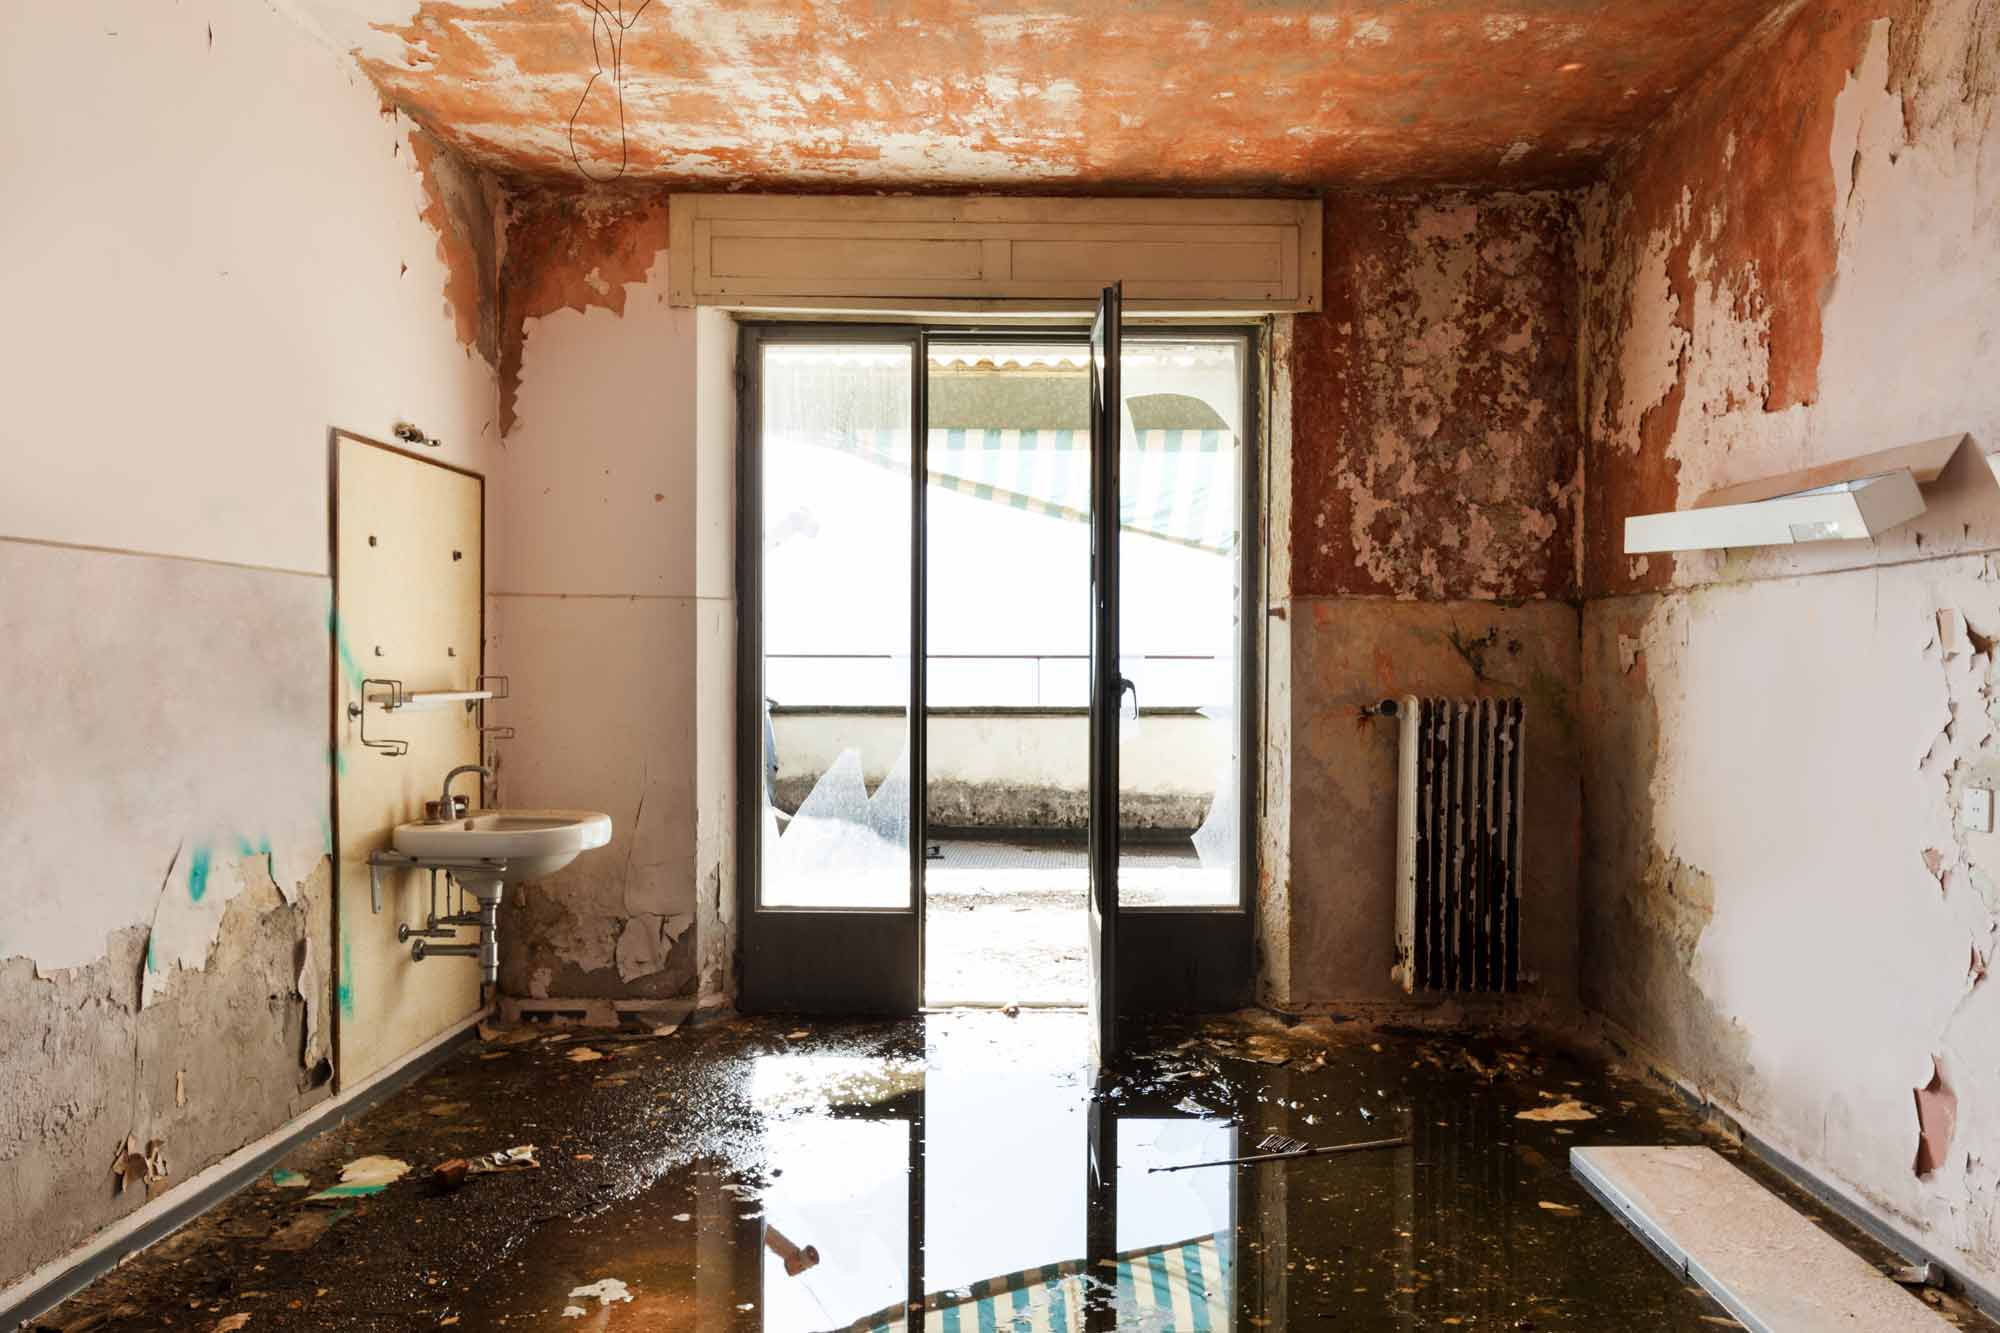 water damage restoration service in San Jacinto, Hemet, Moreno Valley, Menifee, Beaumont, Yucaipa